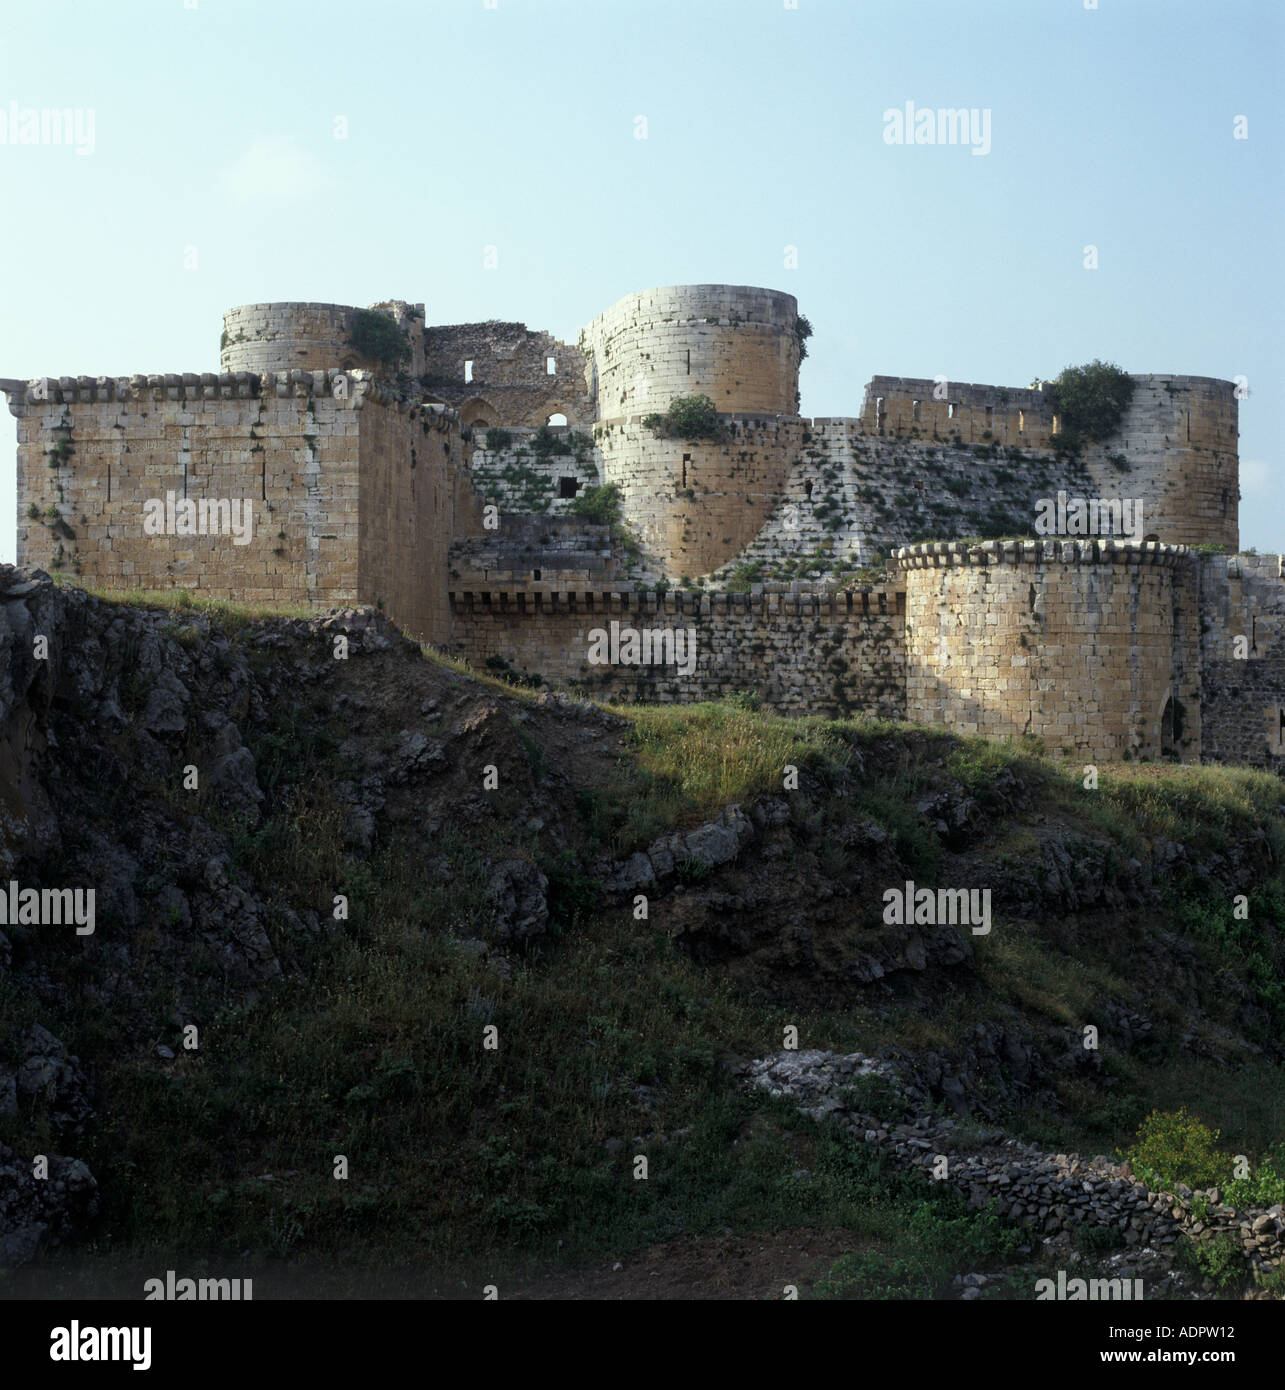 Krak des Chevaliers also known as Qalaat al Hosn Crusader castle Syria - Stock Image